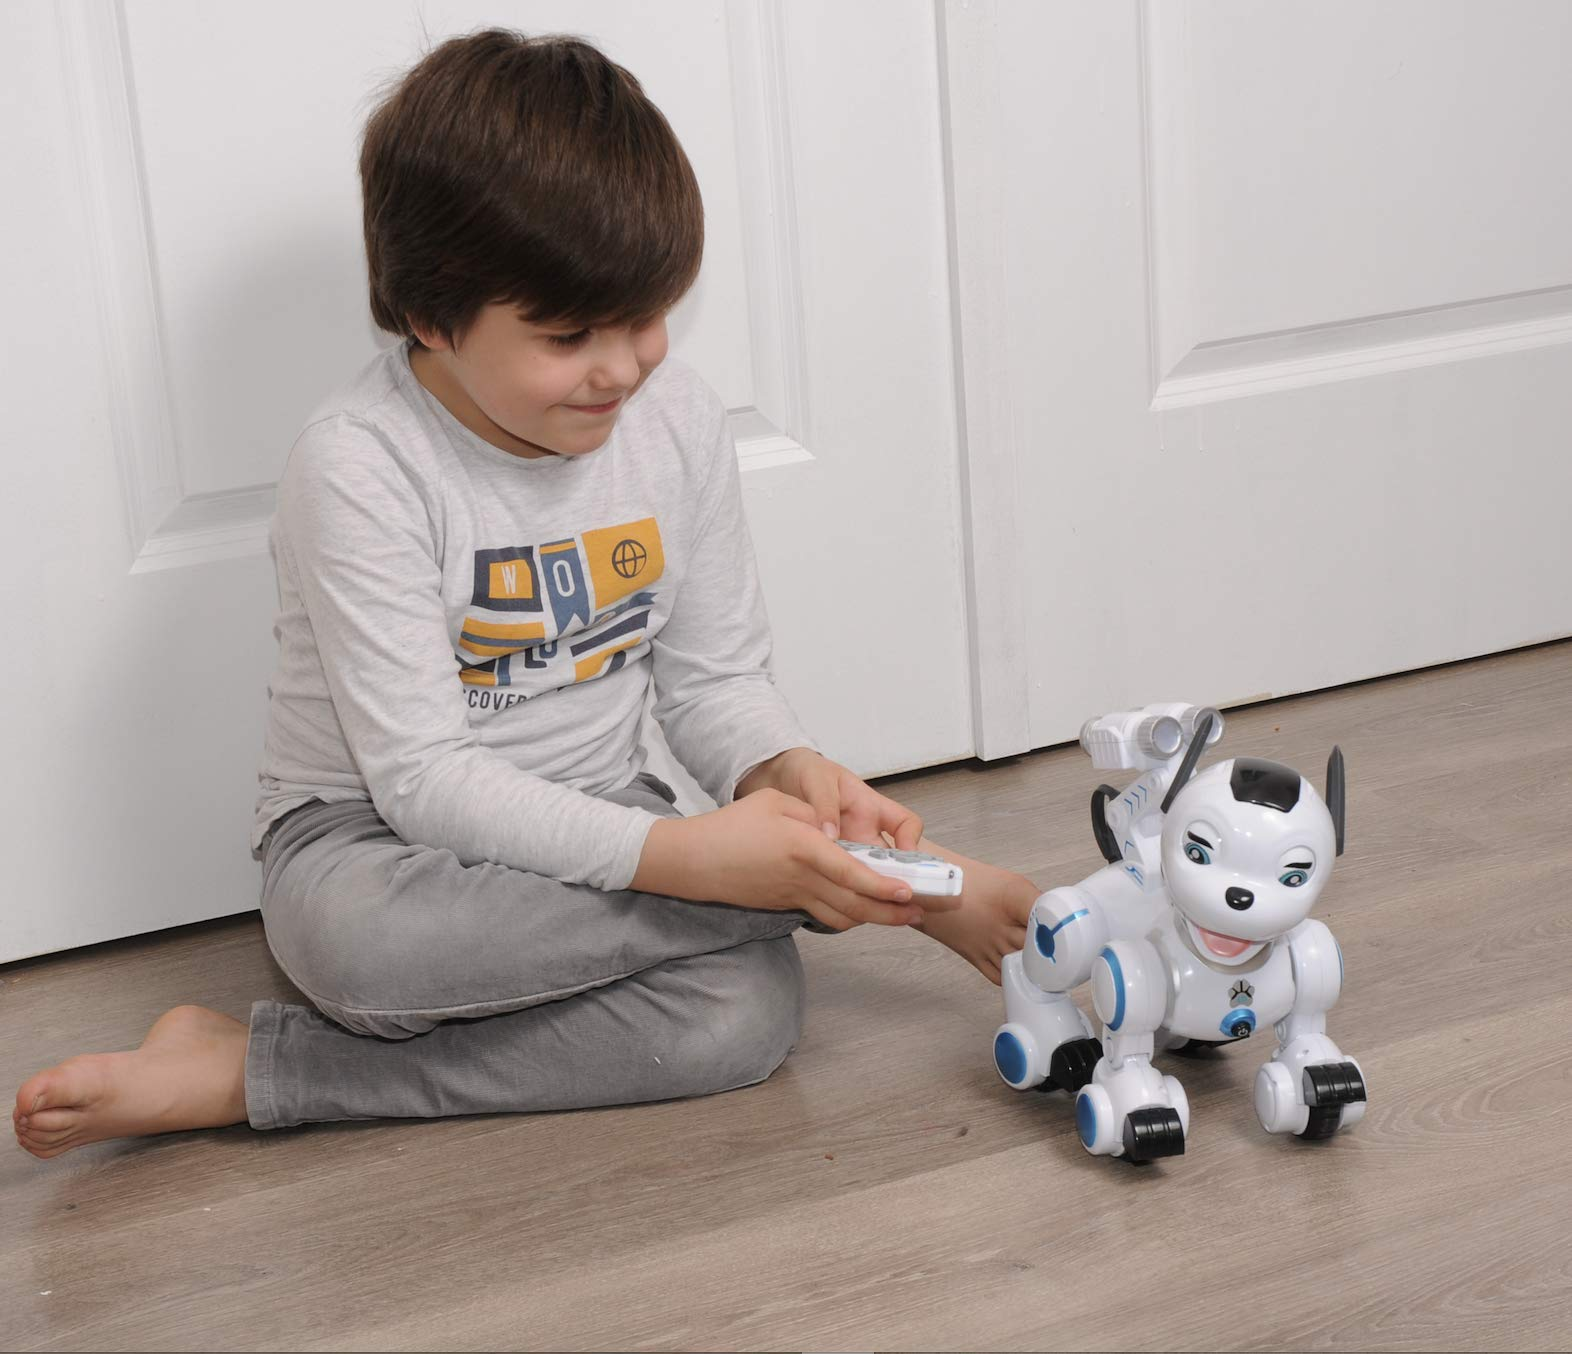 Bsmart toys Intelligent Hi-Tech Wireless Robot Dog ,Remote Control Educational Puppy Pet Best Birthday Gift for 5,6,7,8,9 Years Boys and Girls Interactive Robotic Friend by Bsmart toys (Image #7)